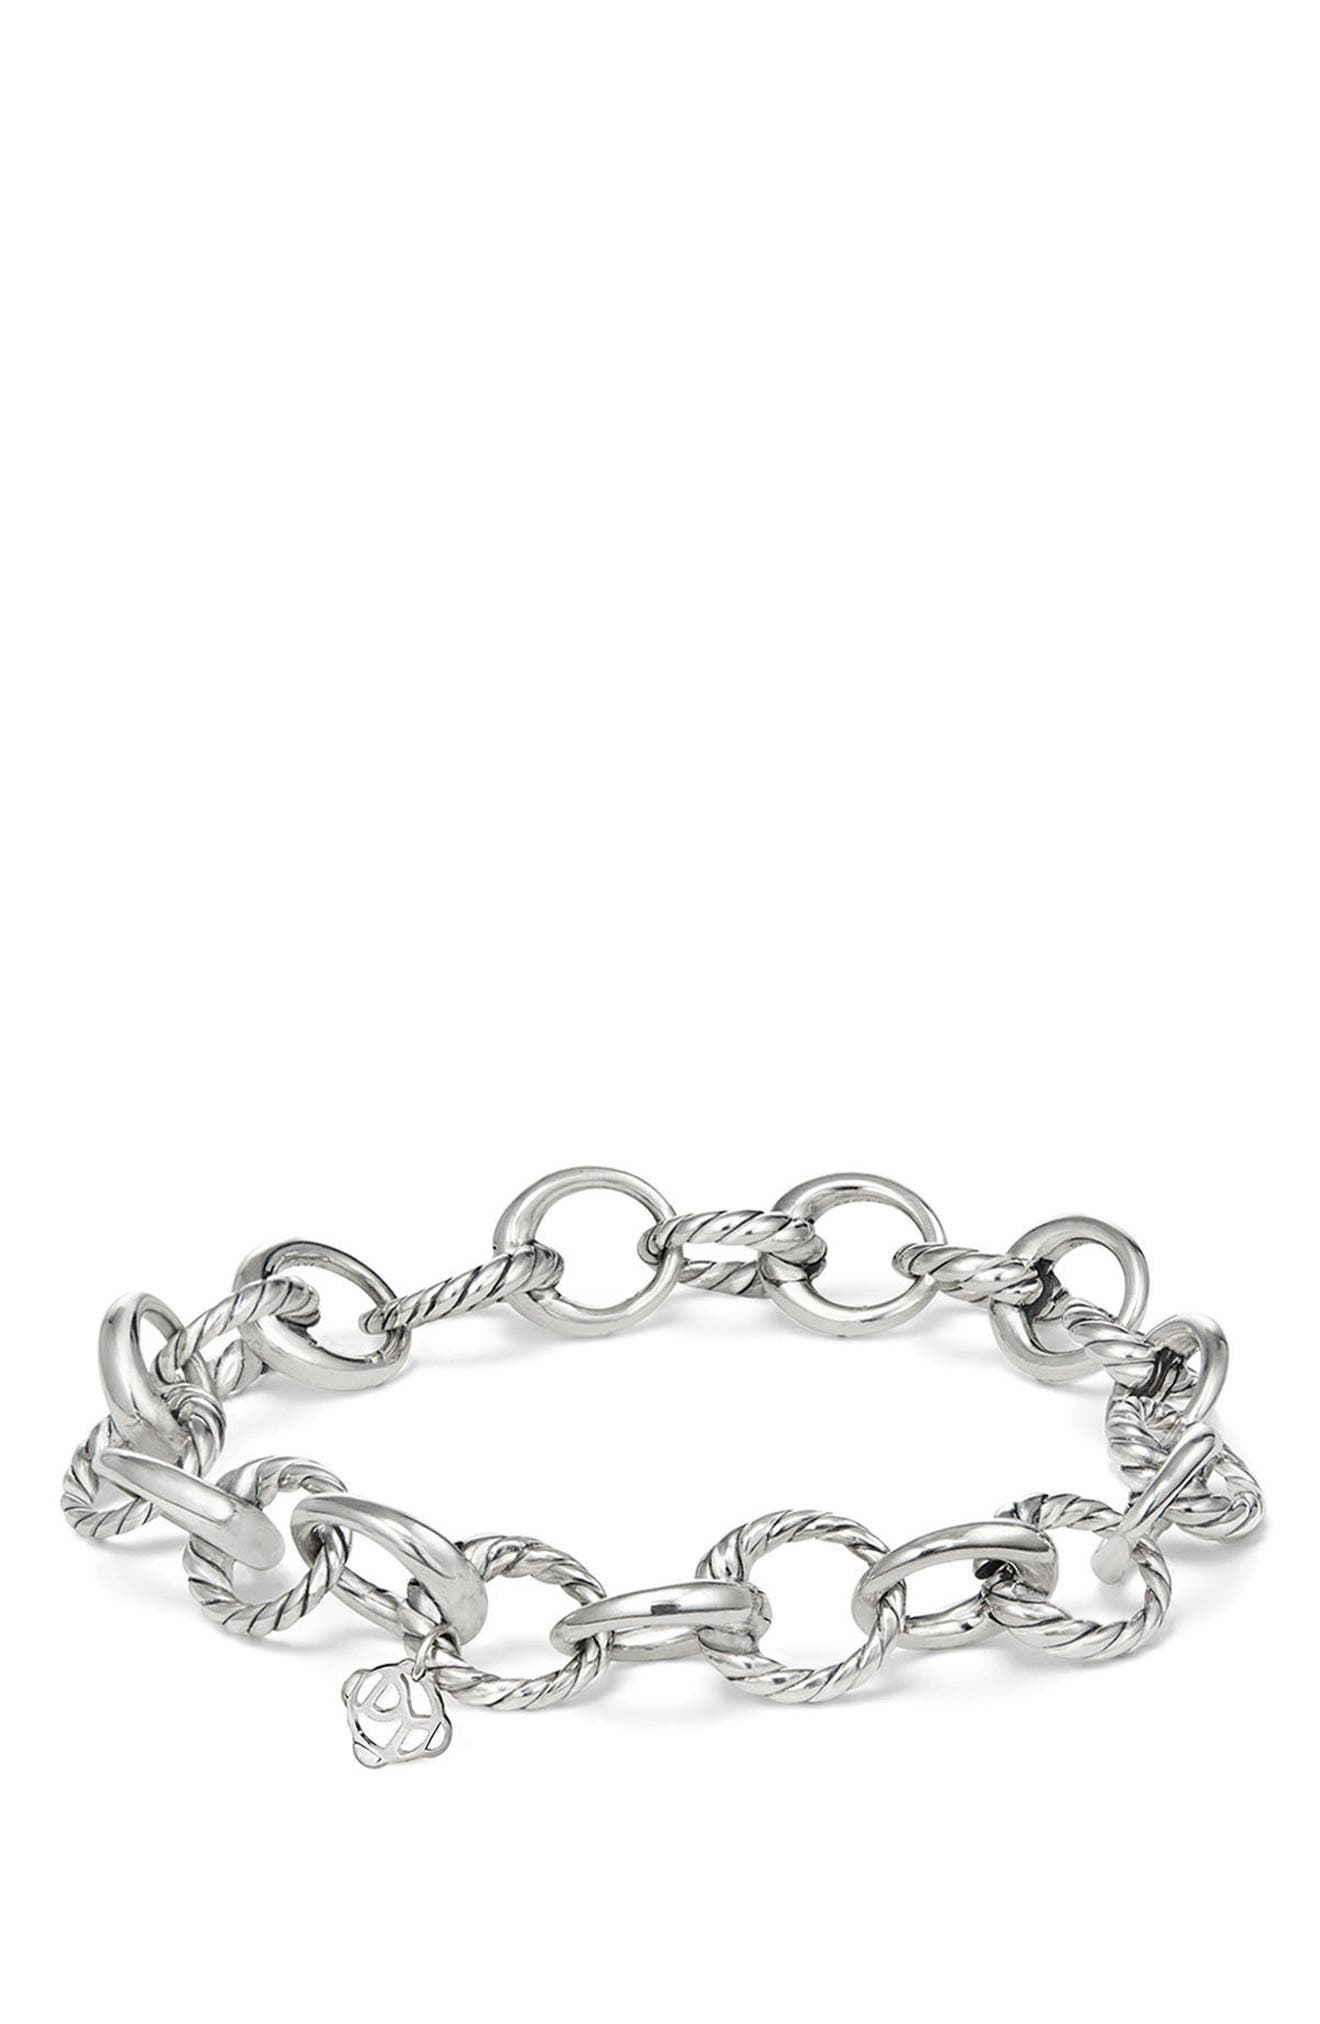 Cable Collectives Oval Link Charm Bracelet,                         Main,                         color, Silver